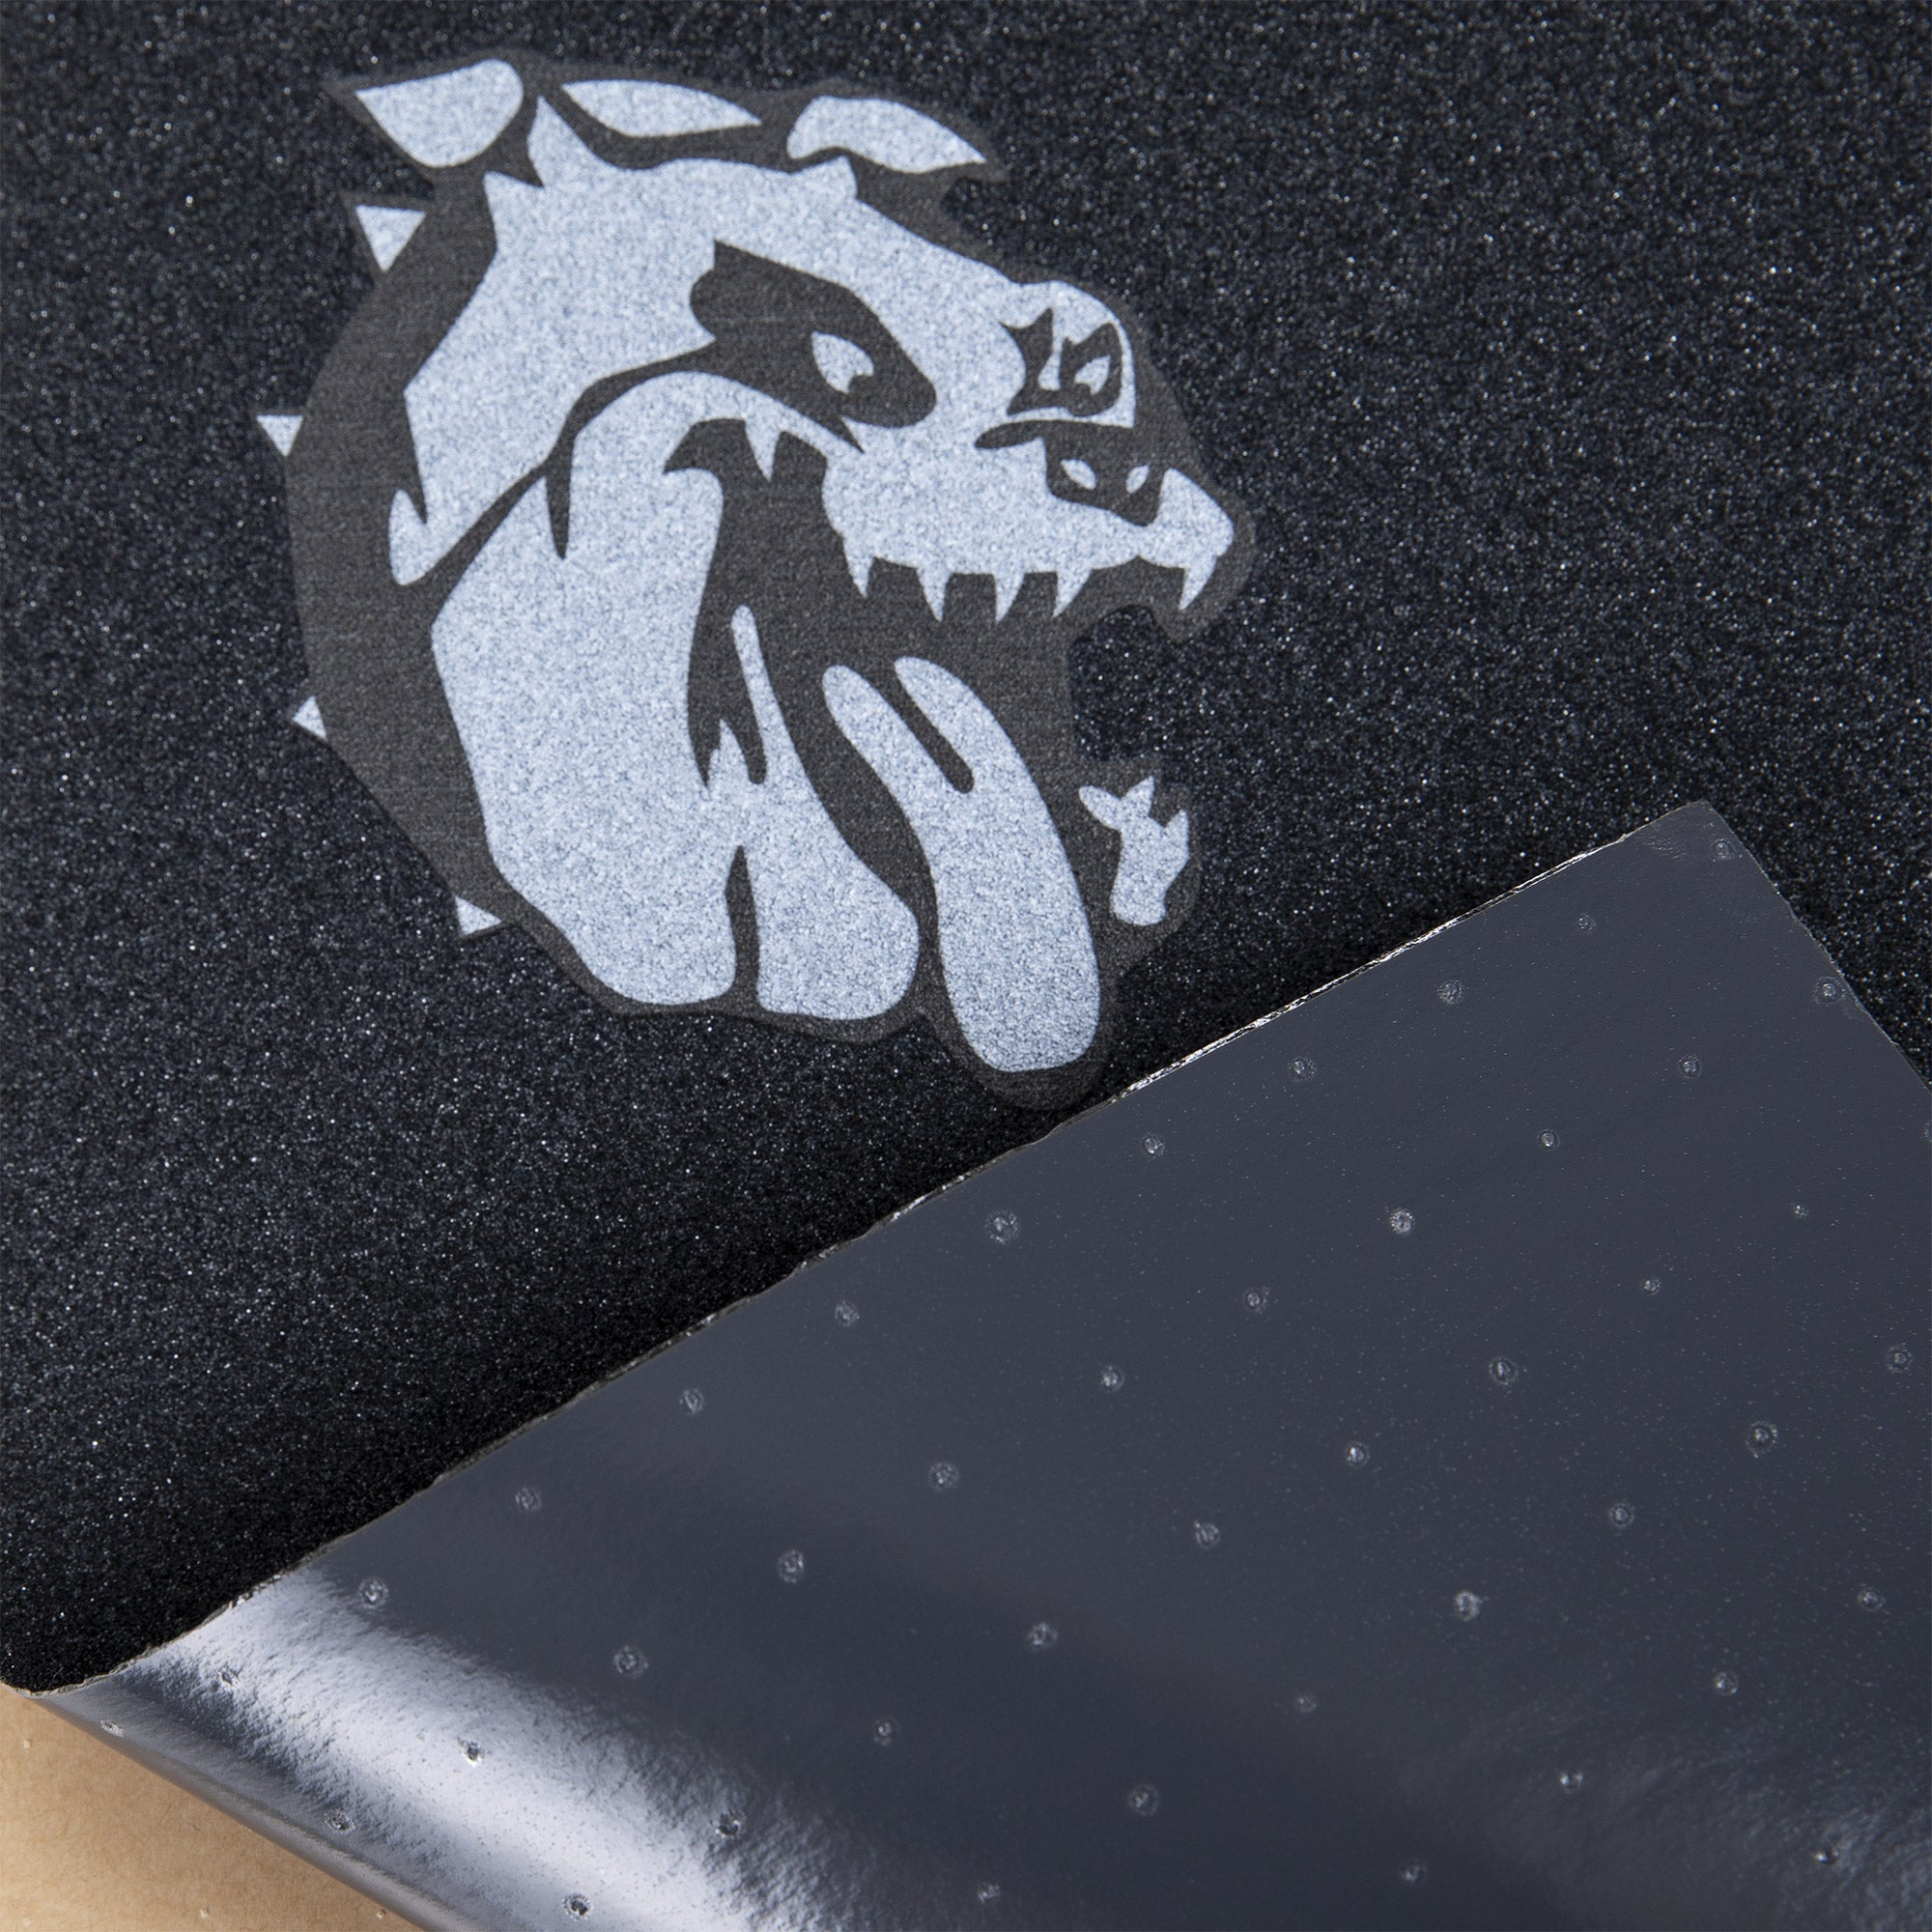 Cal 7 skateboard griptape with bulldog design